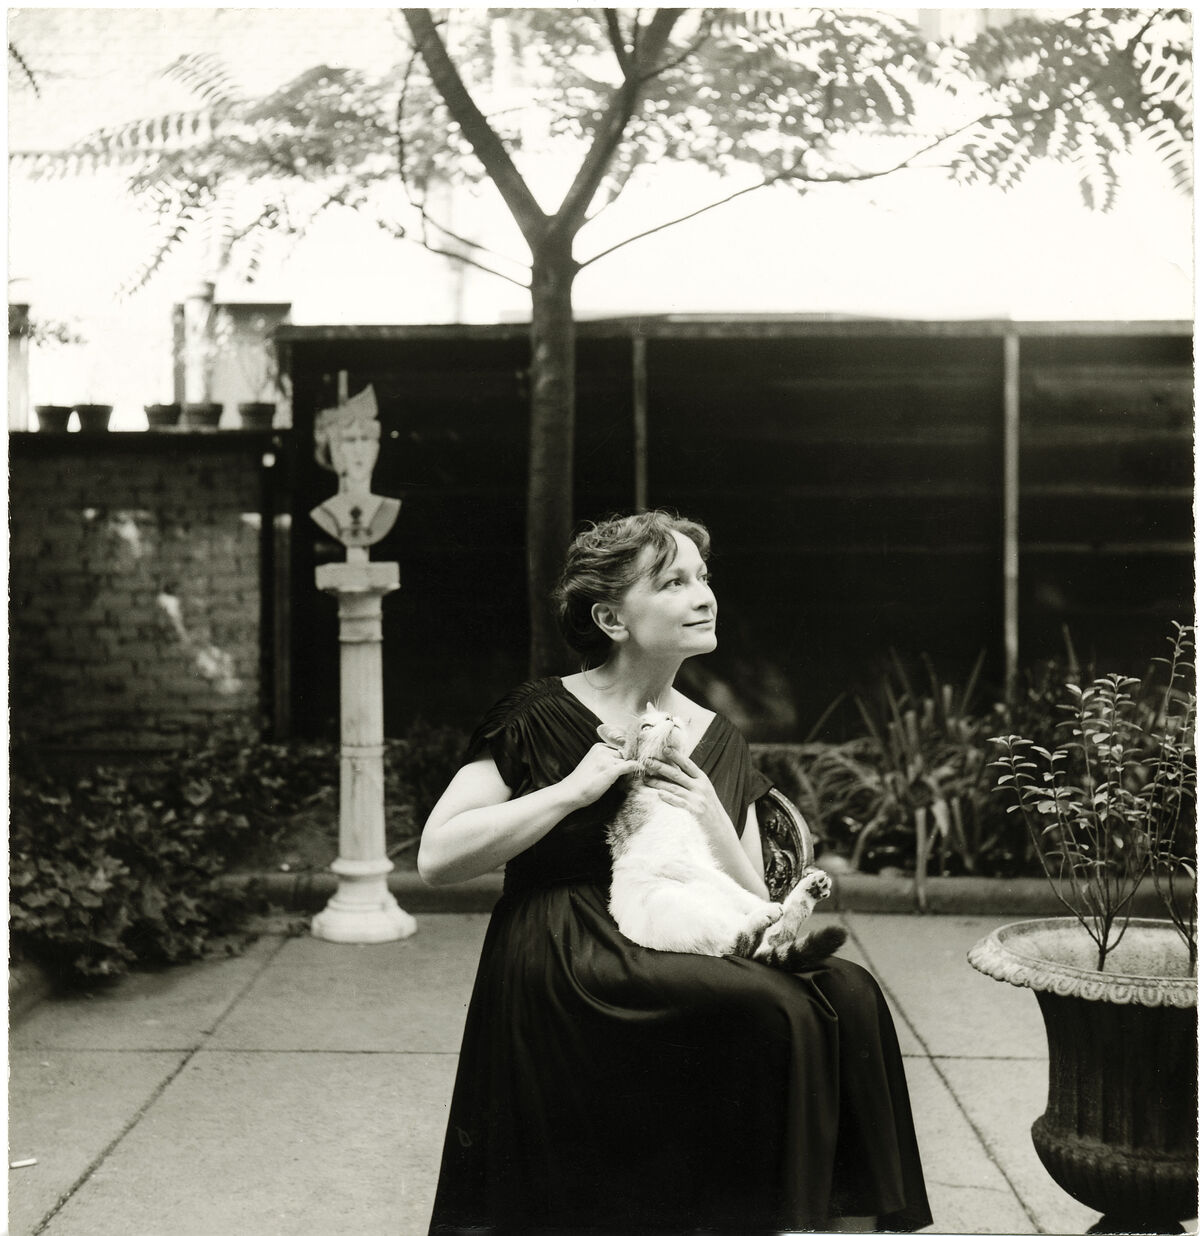 Hedda Sterne with Poussin. Image from Artful Cats  by Mary Savig, published by the Smithsonian's Archives of American Art, 2019. Courtesy of the publishers.